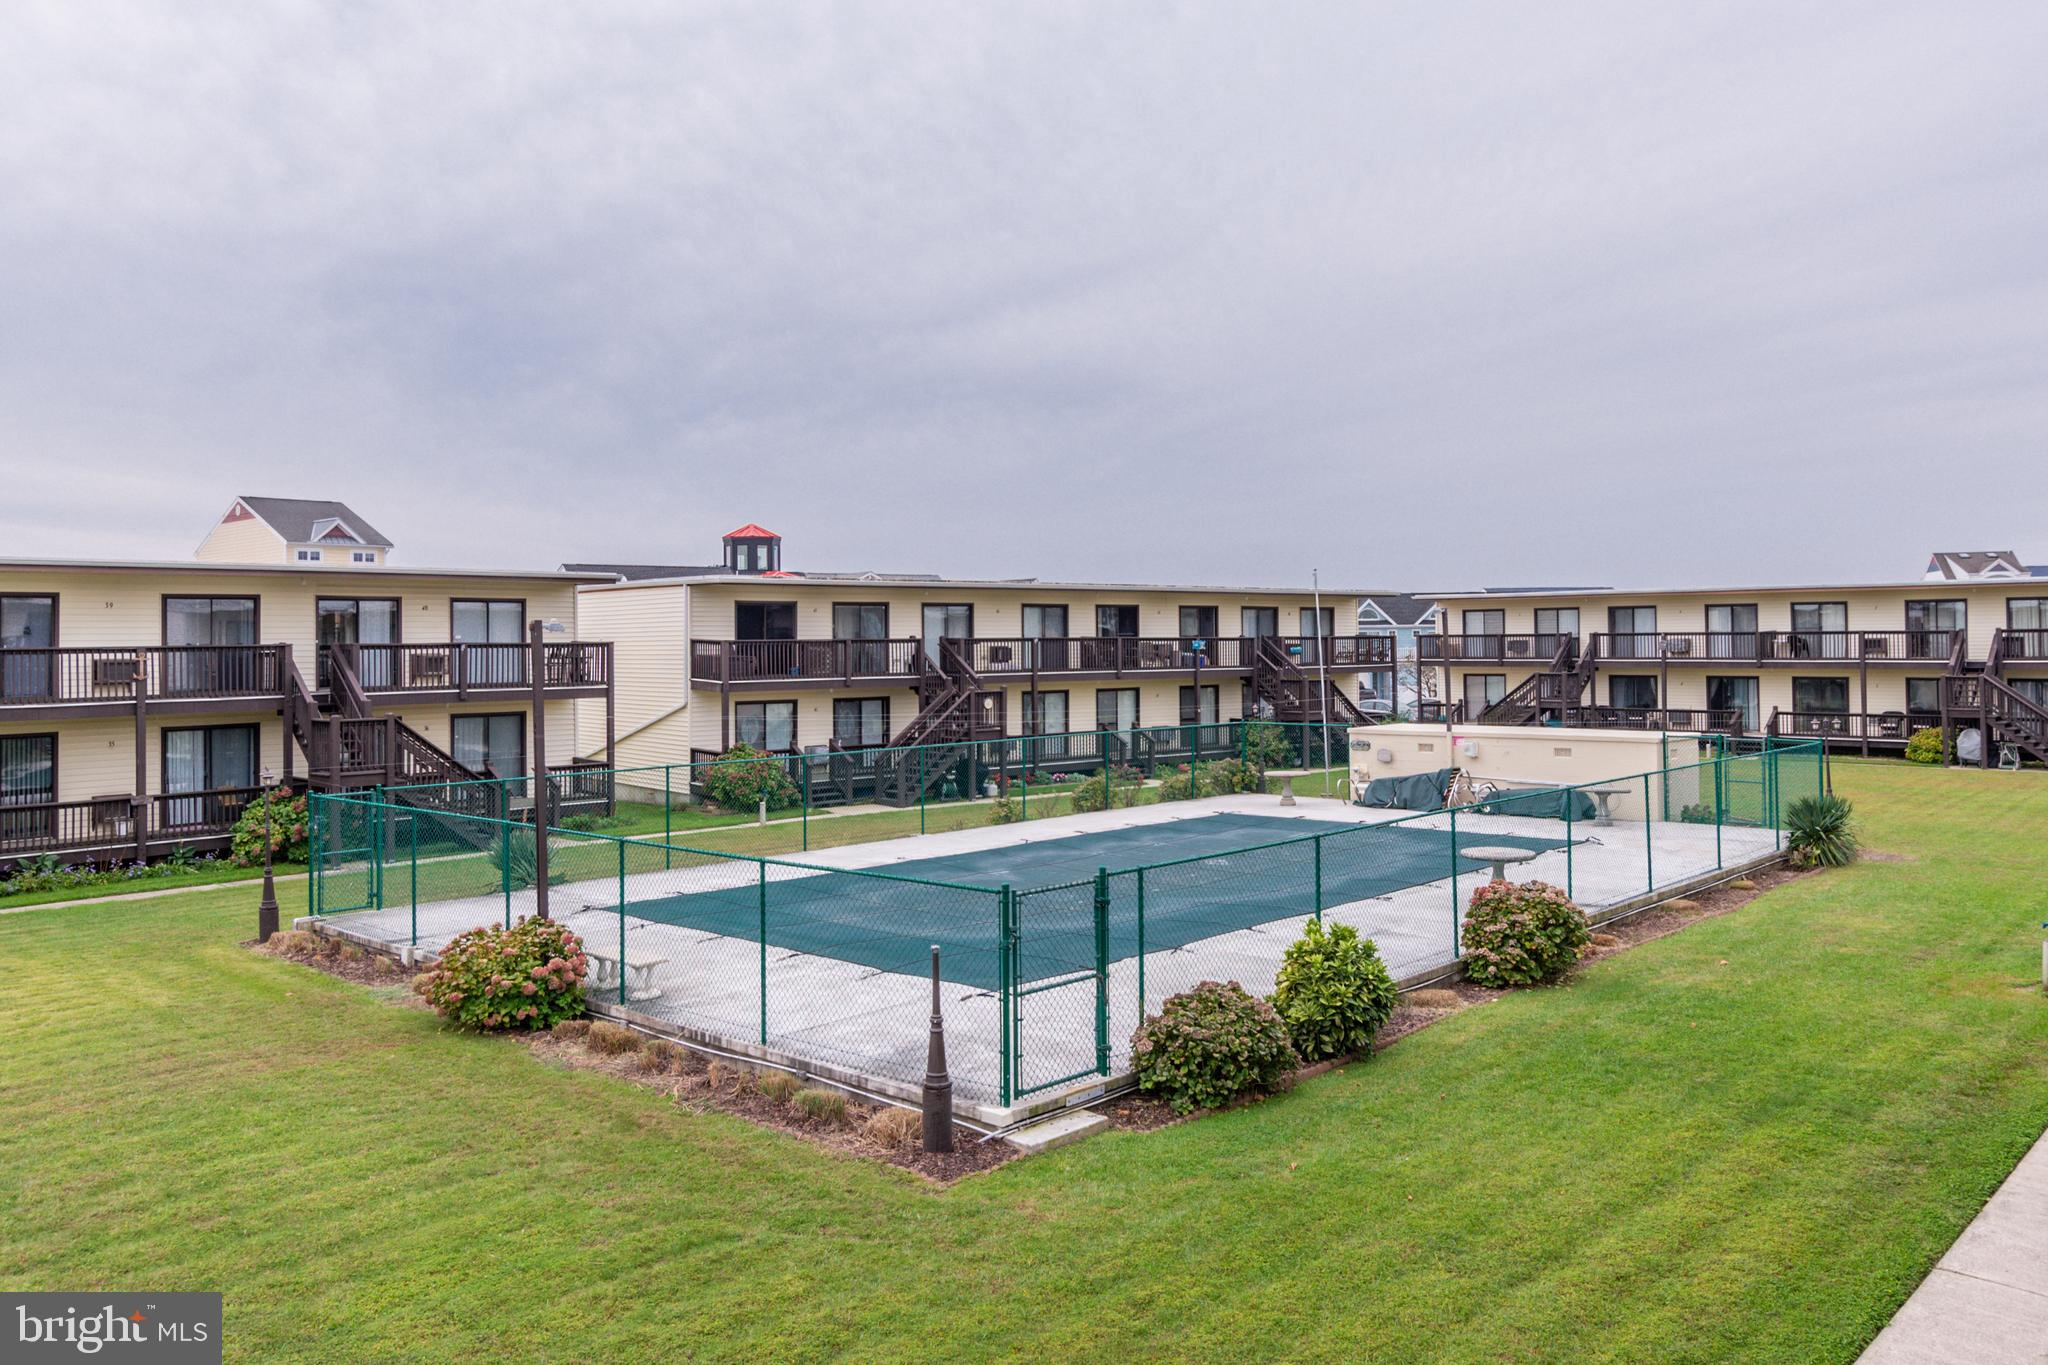 2 Bedroom Condo w/ Pool!  A non-rental with excellent rental potential.   First floor location with